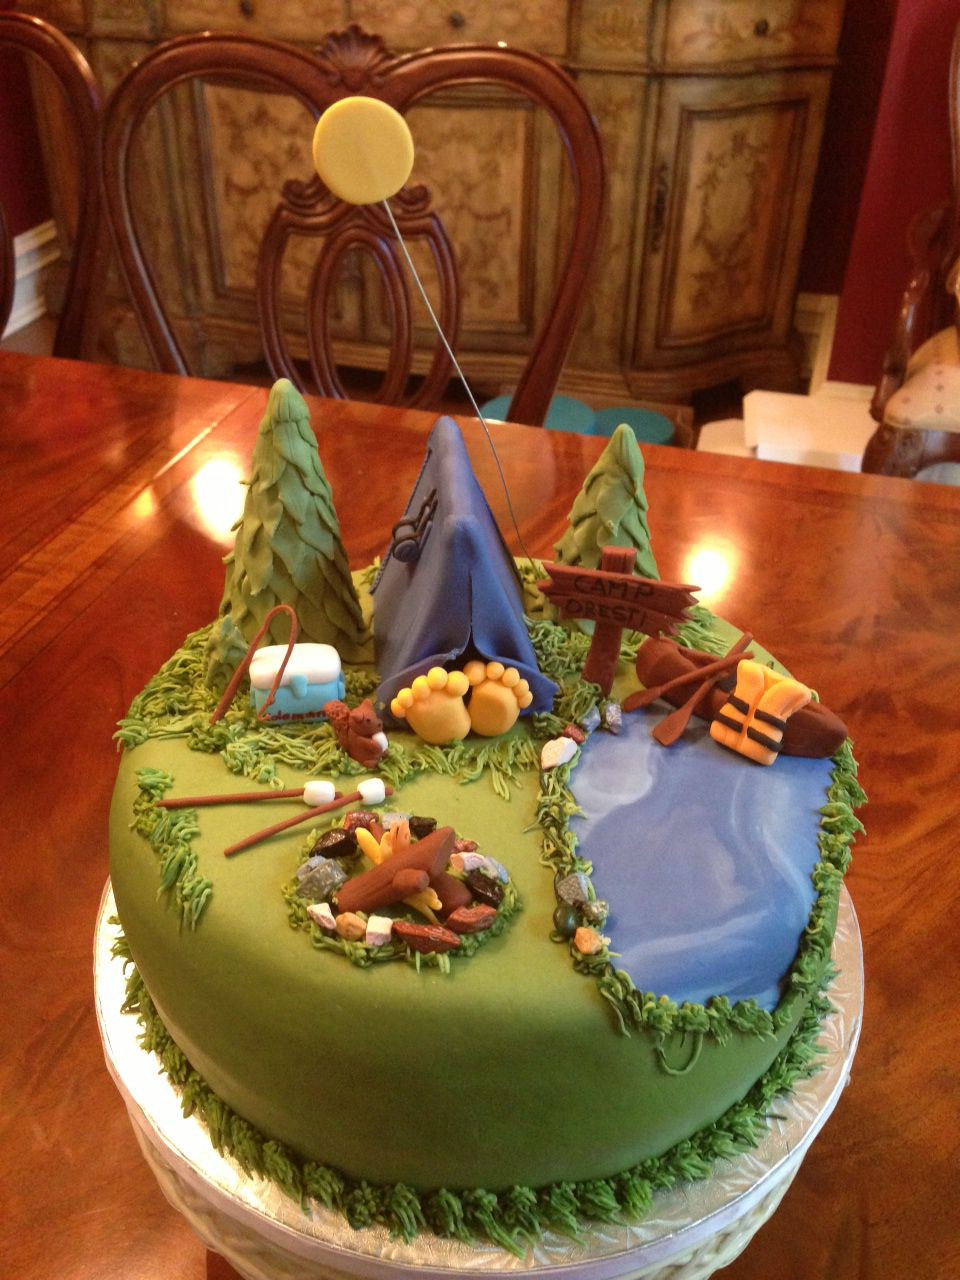 Camping Themed Birthday Cake  Camping themed cake 烘焙 Pinterest